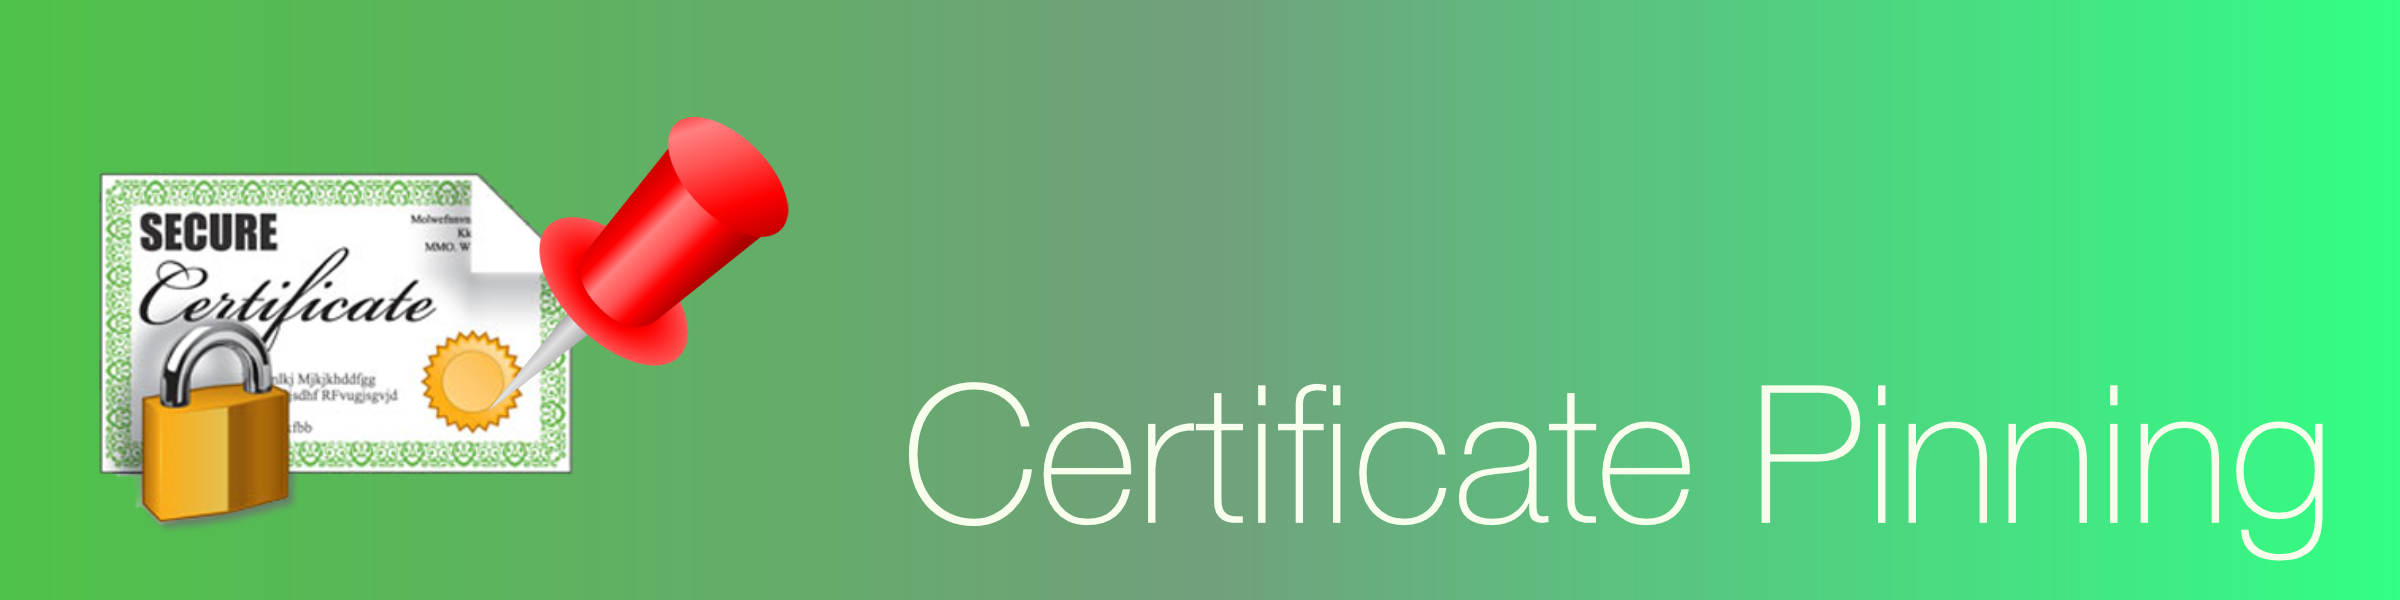 Certificate pinning technique on iOS - Anderson Santos